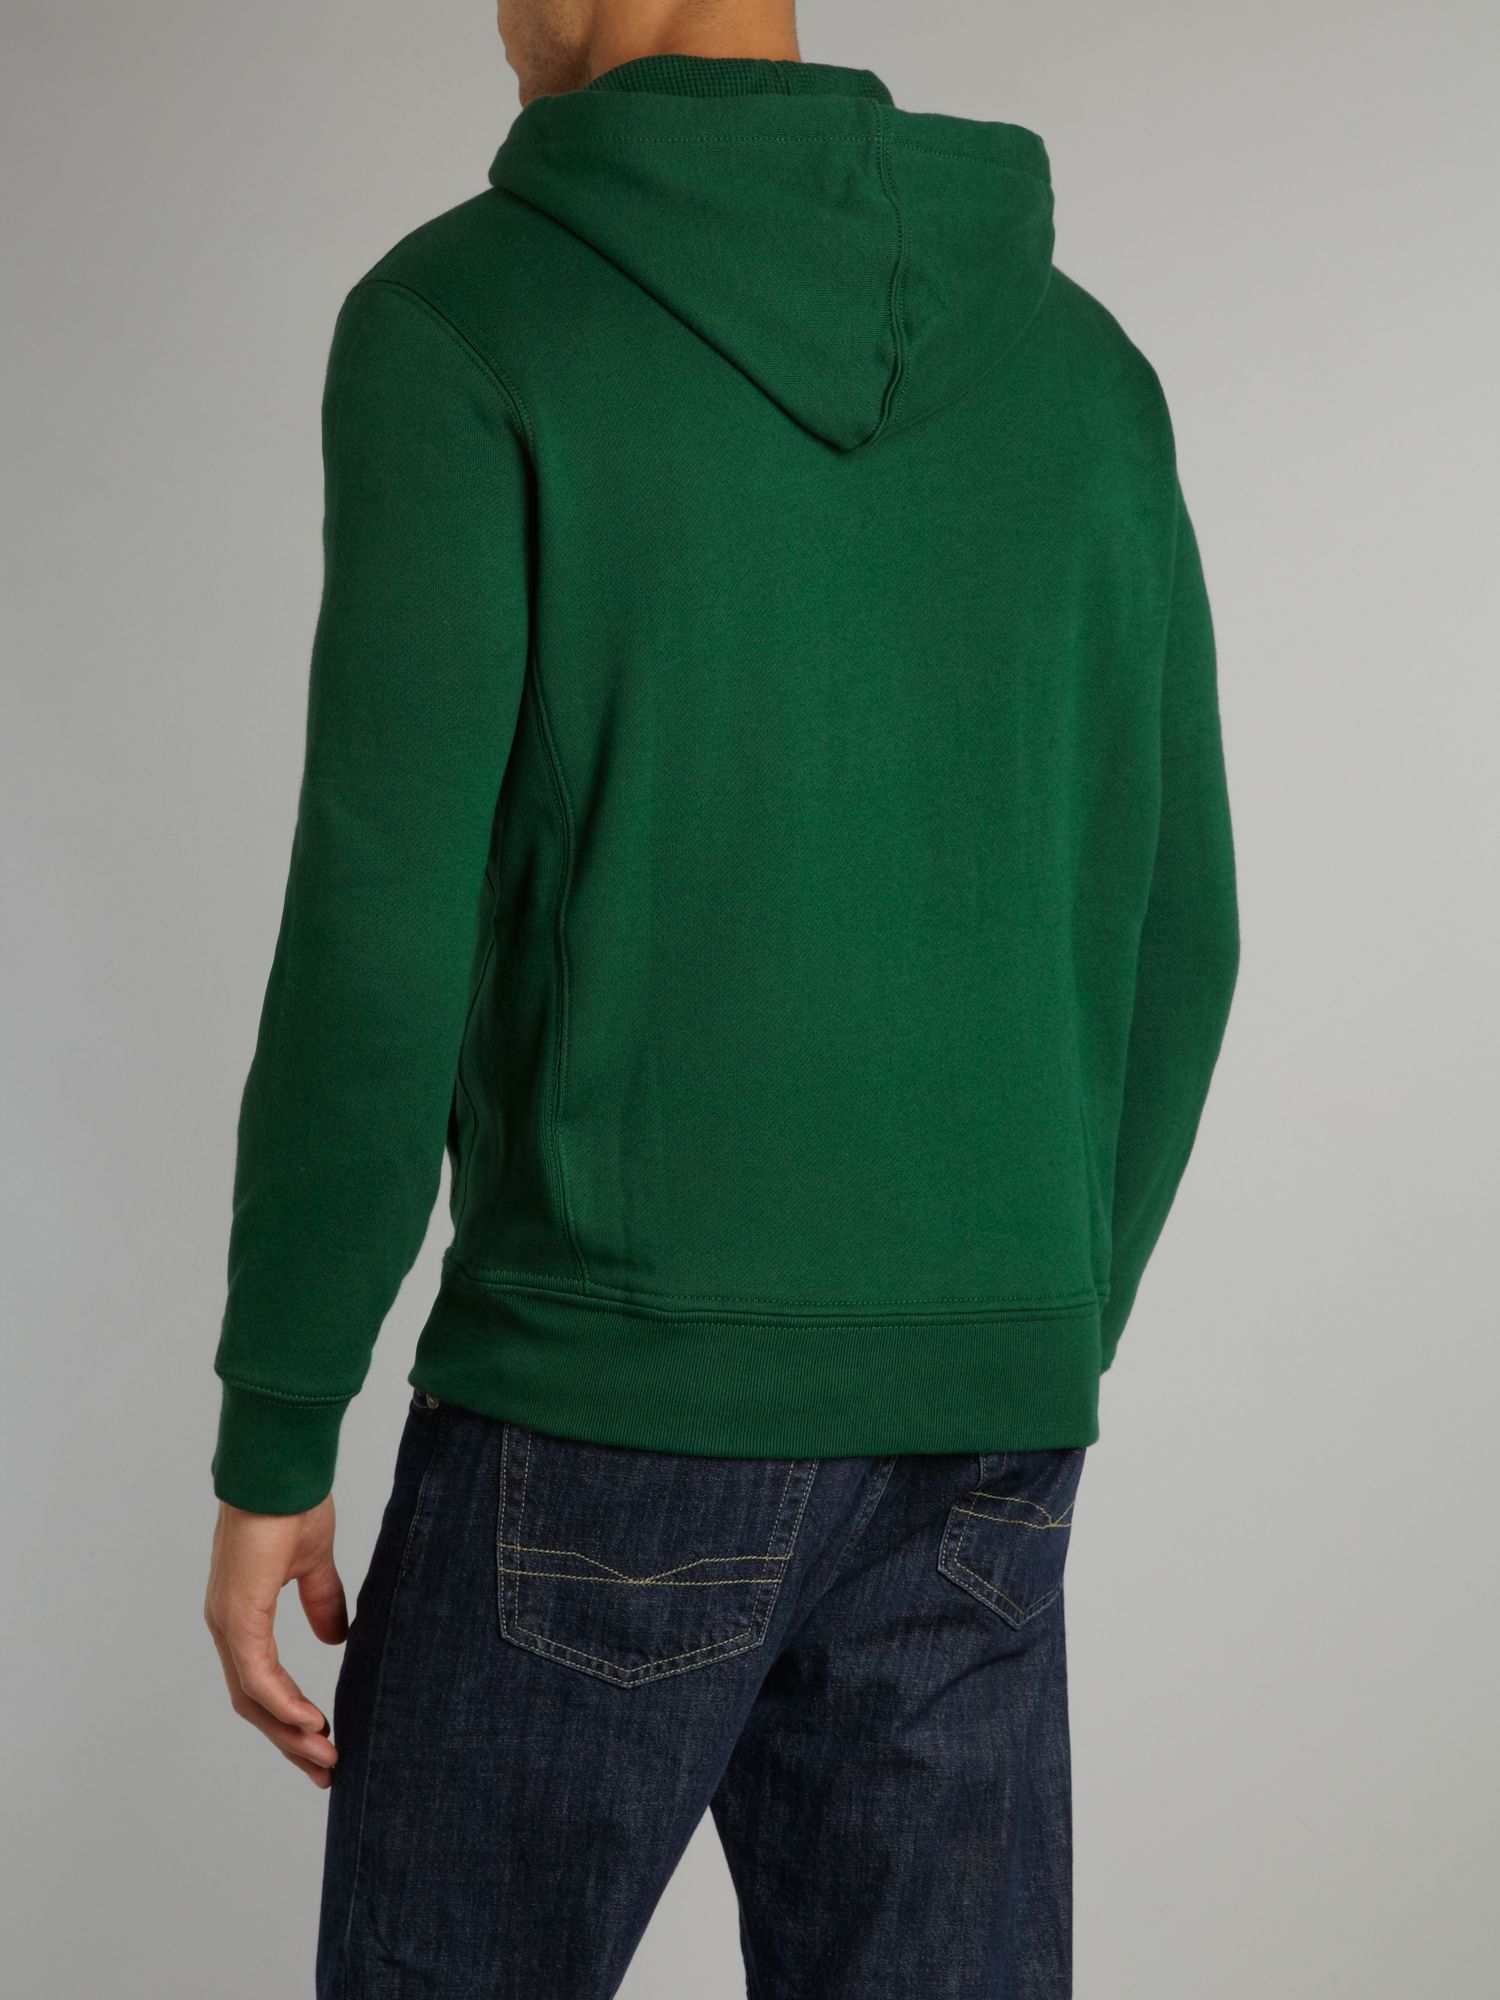 2858c7f939b61 Lyst - Polo Ralph Lauren Zip Through Hooded Top in Green for Men